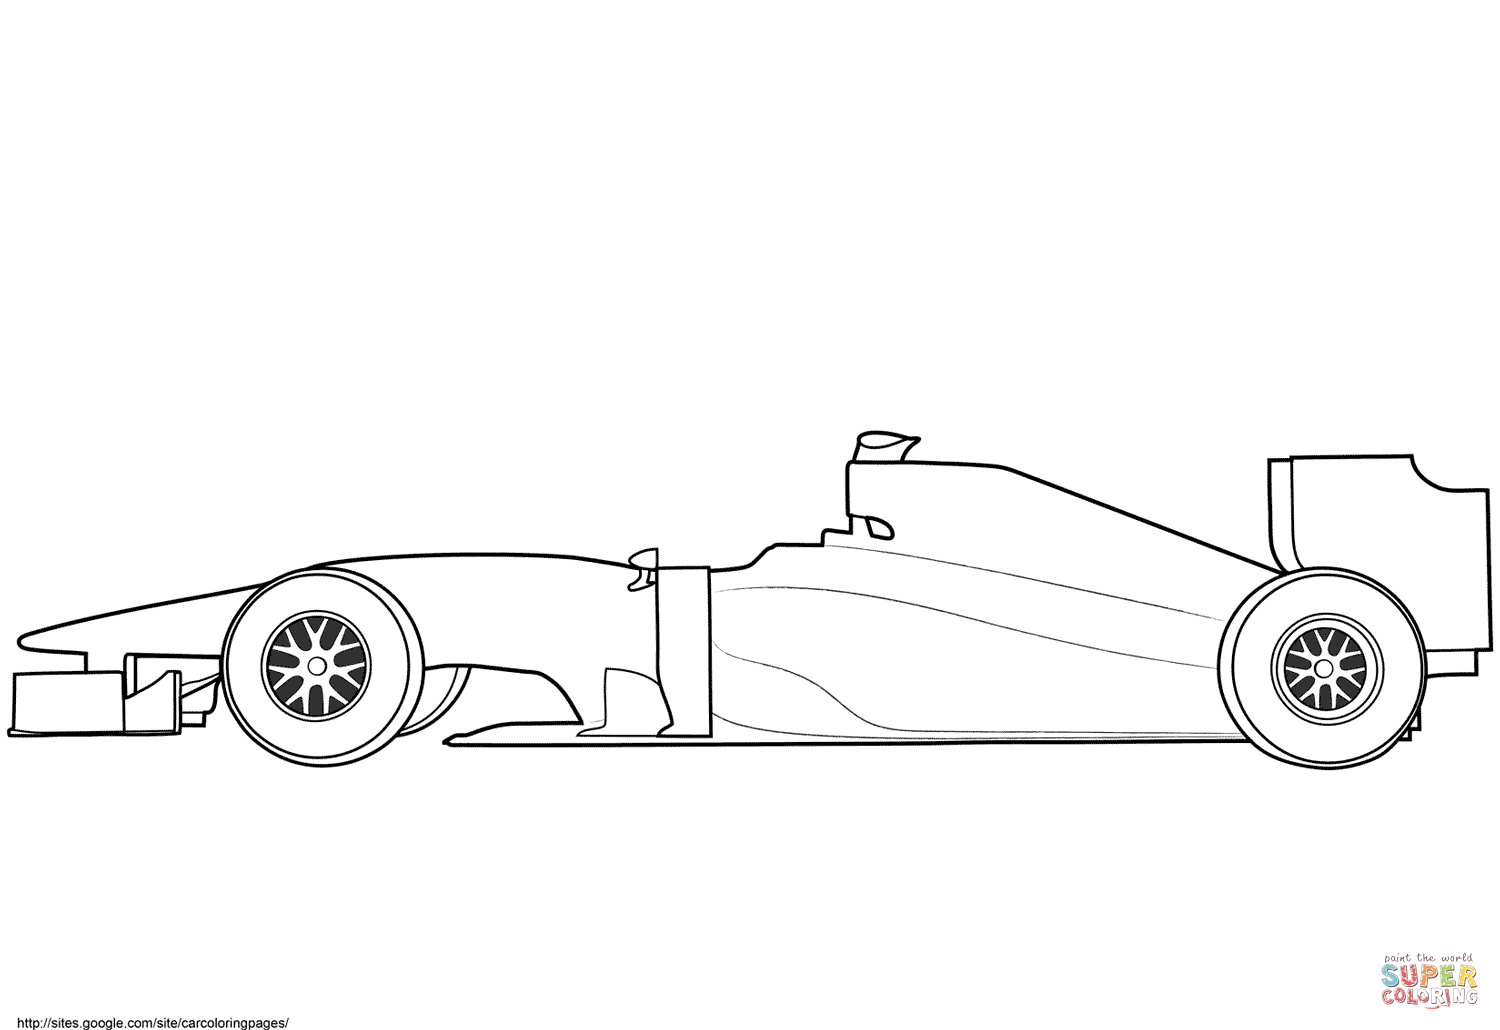 Blank Formula  Race Car Coloring Page  Free Printable Coloring Pages For Blank Race Car Templates